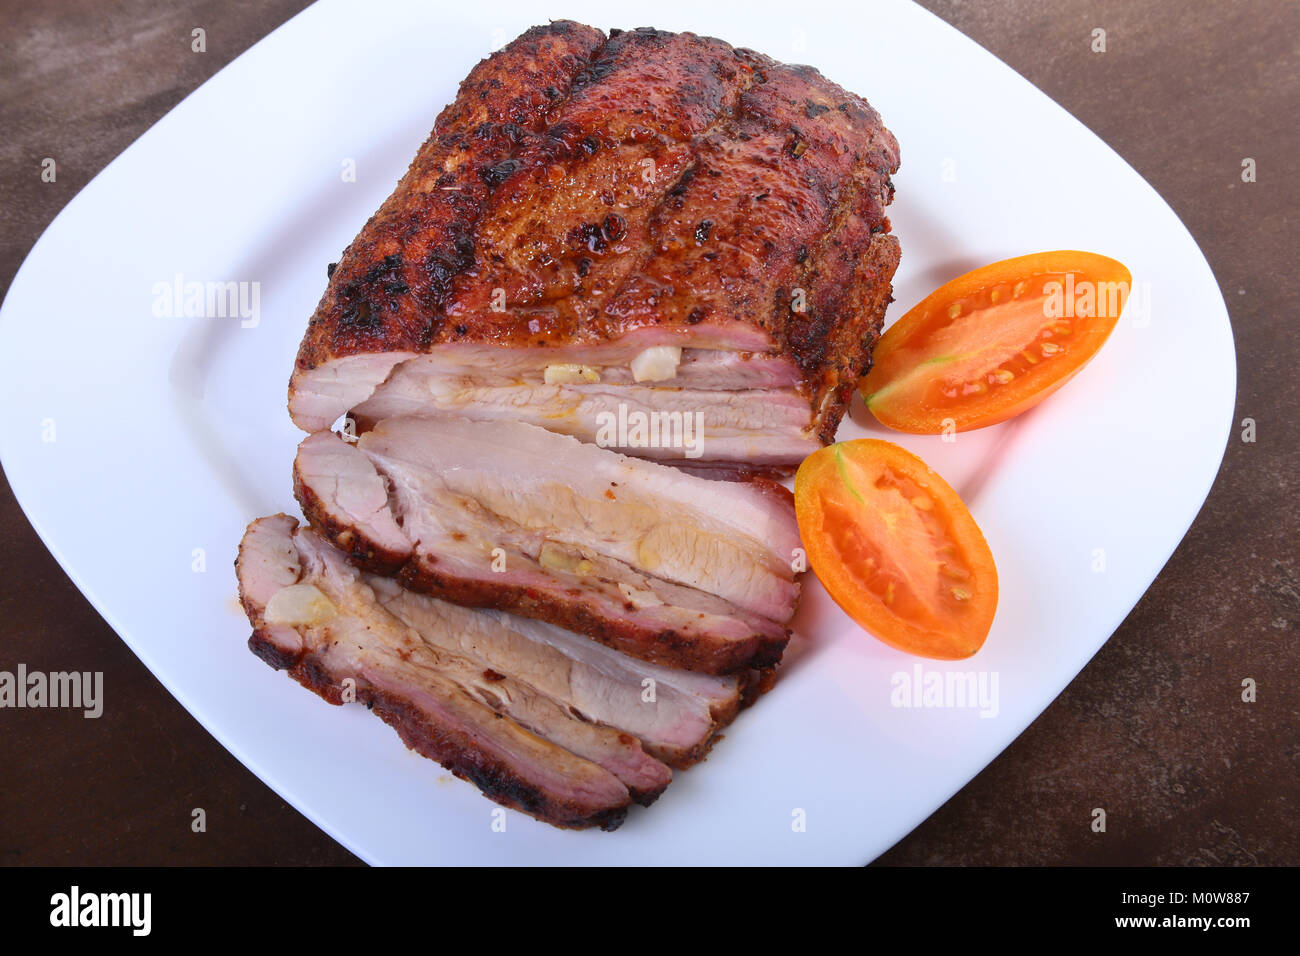 grilled pork chops with tomato and ketchup on plate. Stock Photo